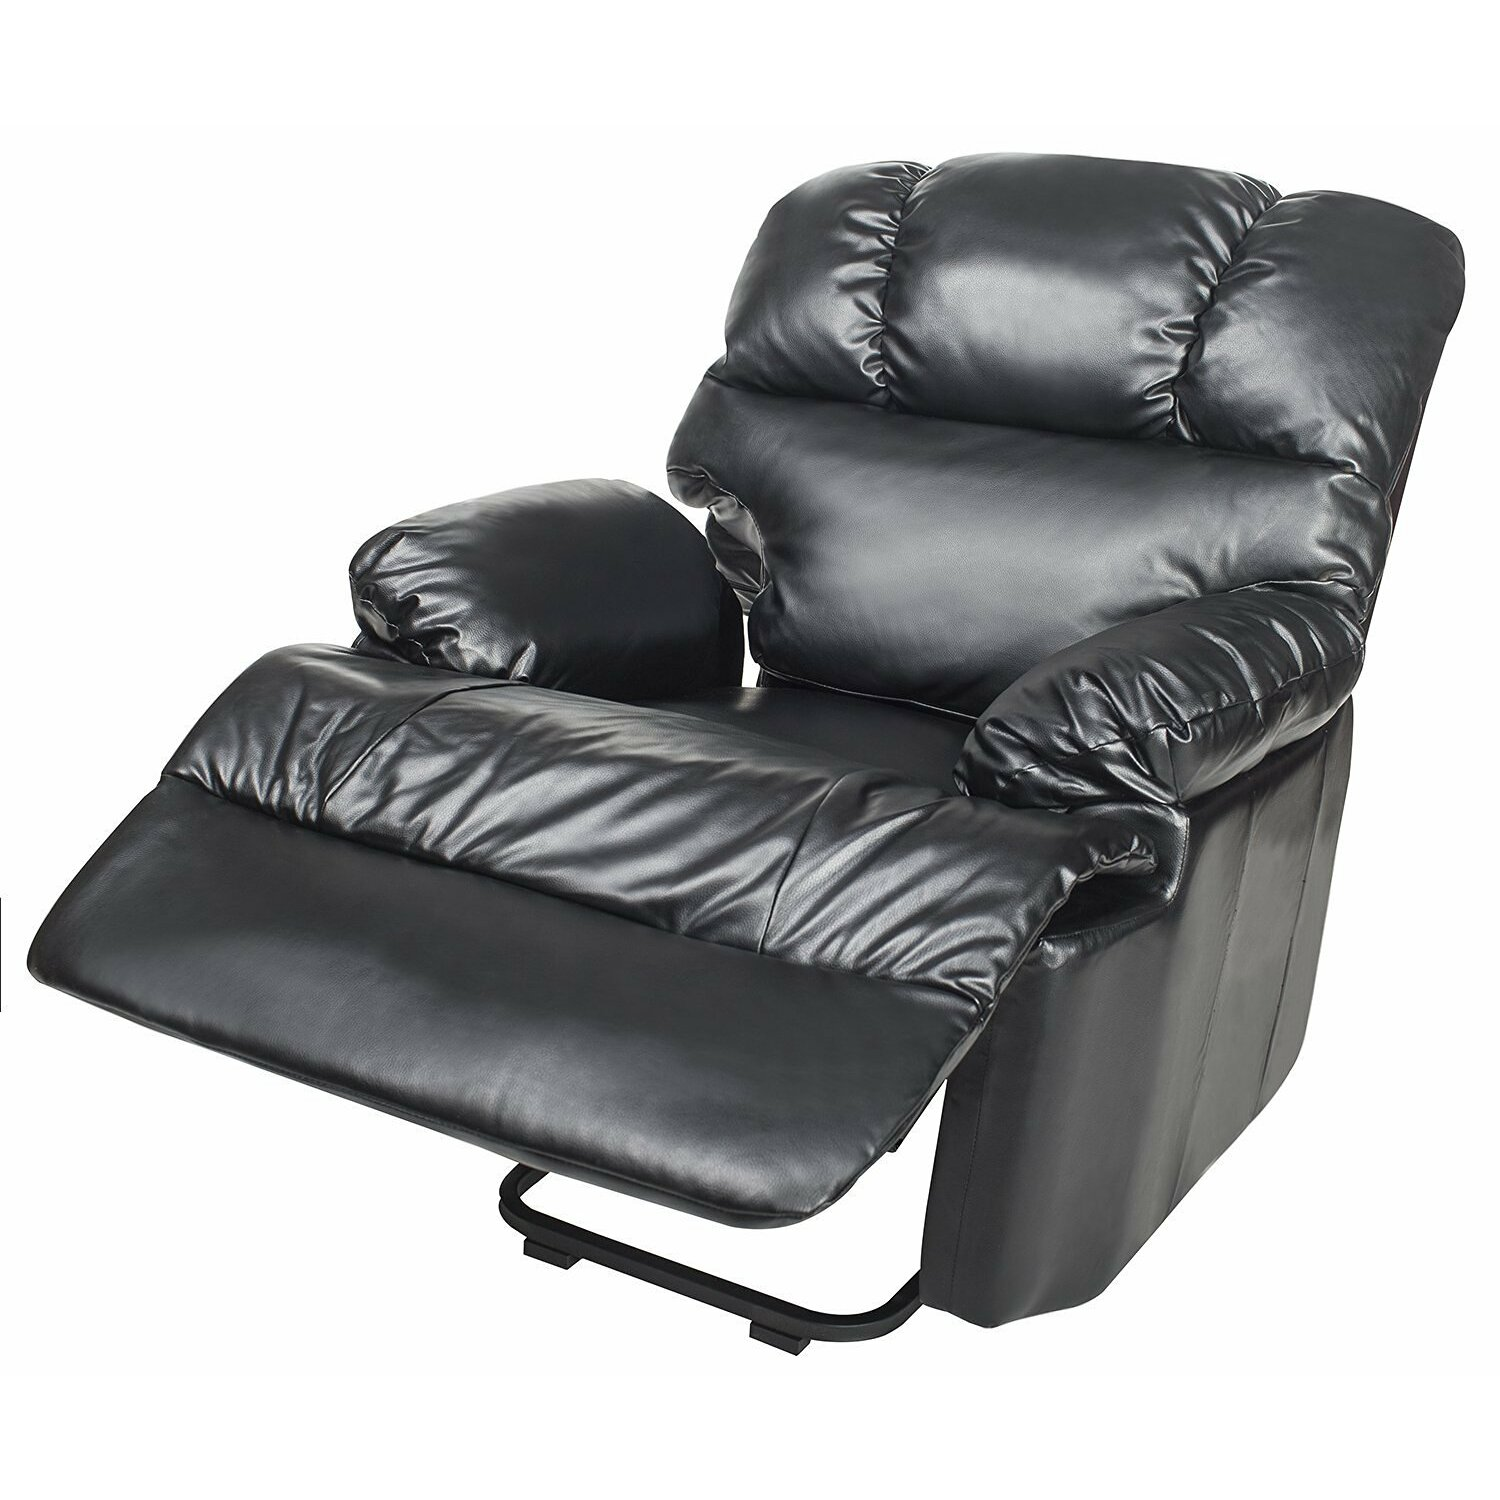 Merax Reclining Massage Chair Reviews Wayfair Supply